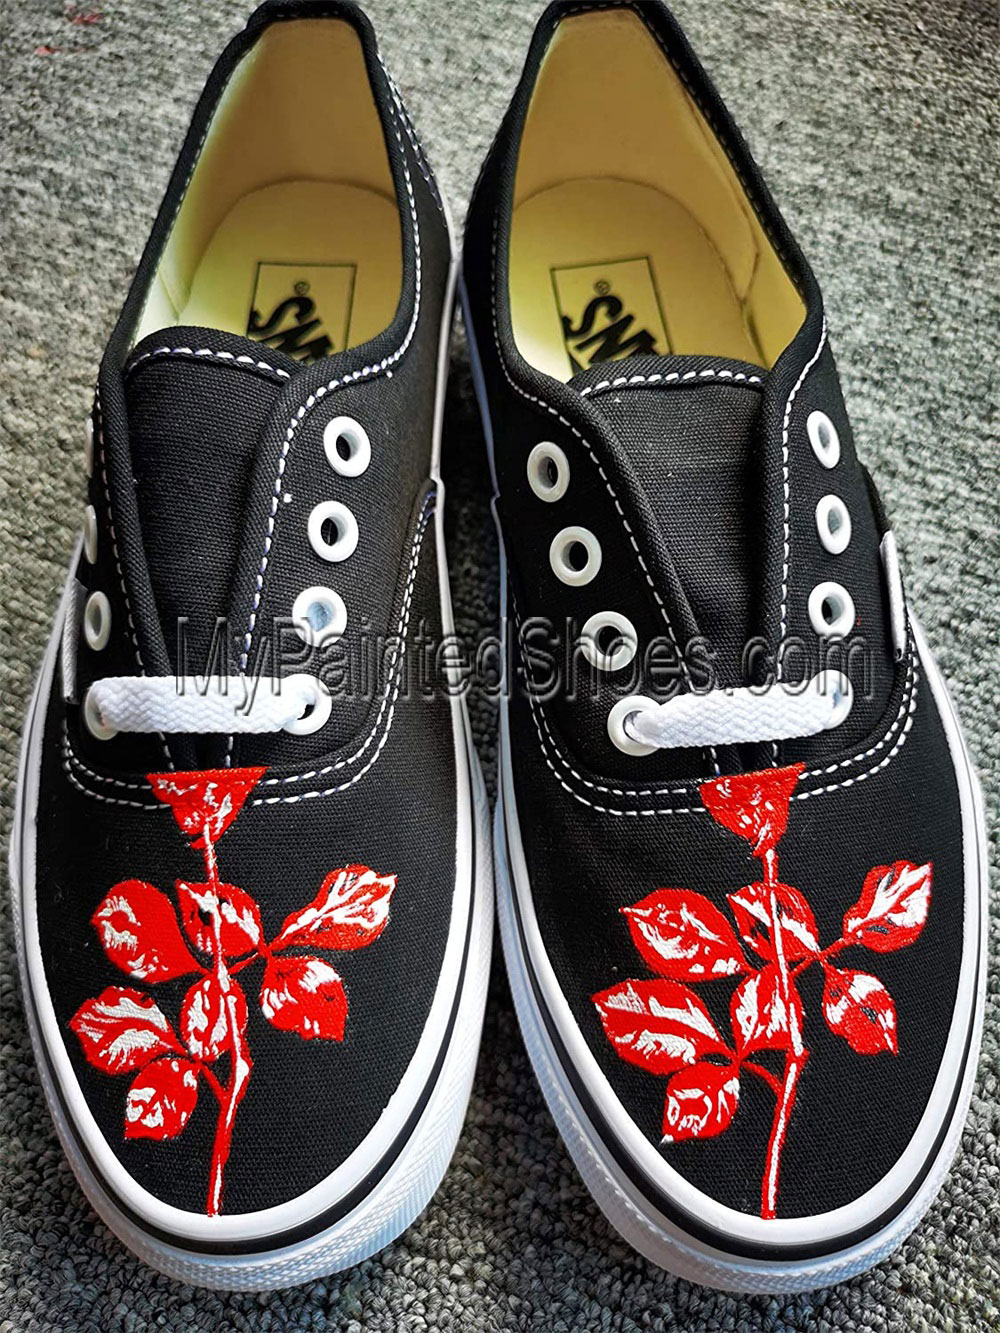 Custom Hand Drawn Rose Design Shoes Rose Women's Shoes Birthday-3